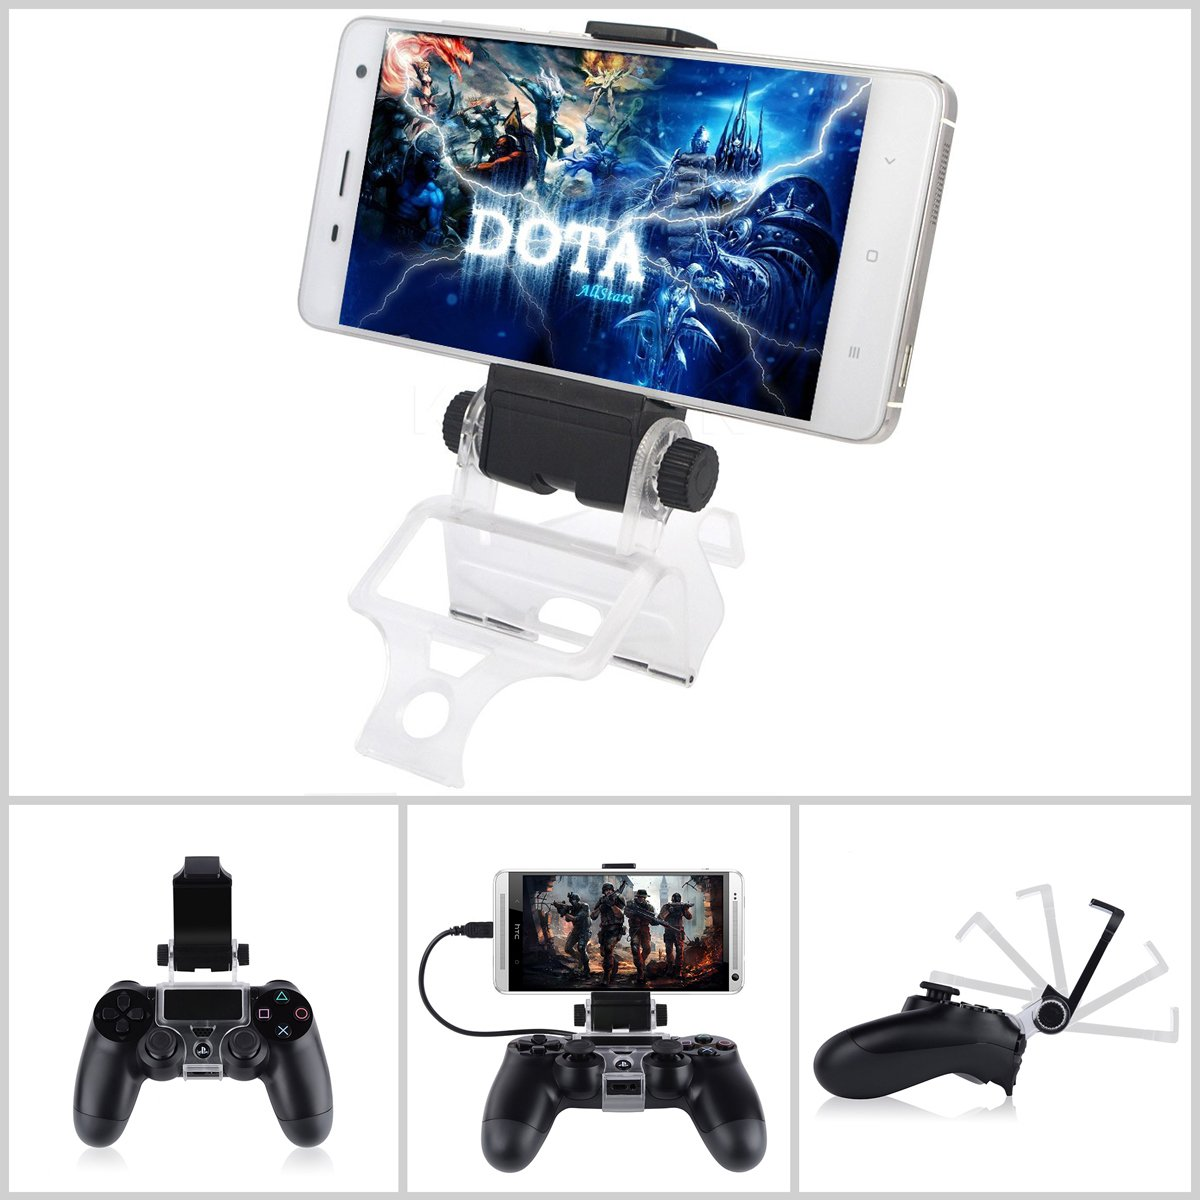 PS4 Controller Phone Mount, Megadream 180 Degree Adjustable Android Smartphone Game Clip Bracket Holder for PS4, PS4 Slim, PS4 Pro, Samsung Galaxy, HTC One, LG, Sony Xperia, Moto (PS4 Mount) by Megadream